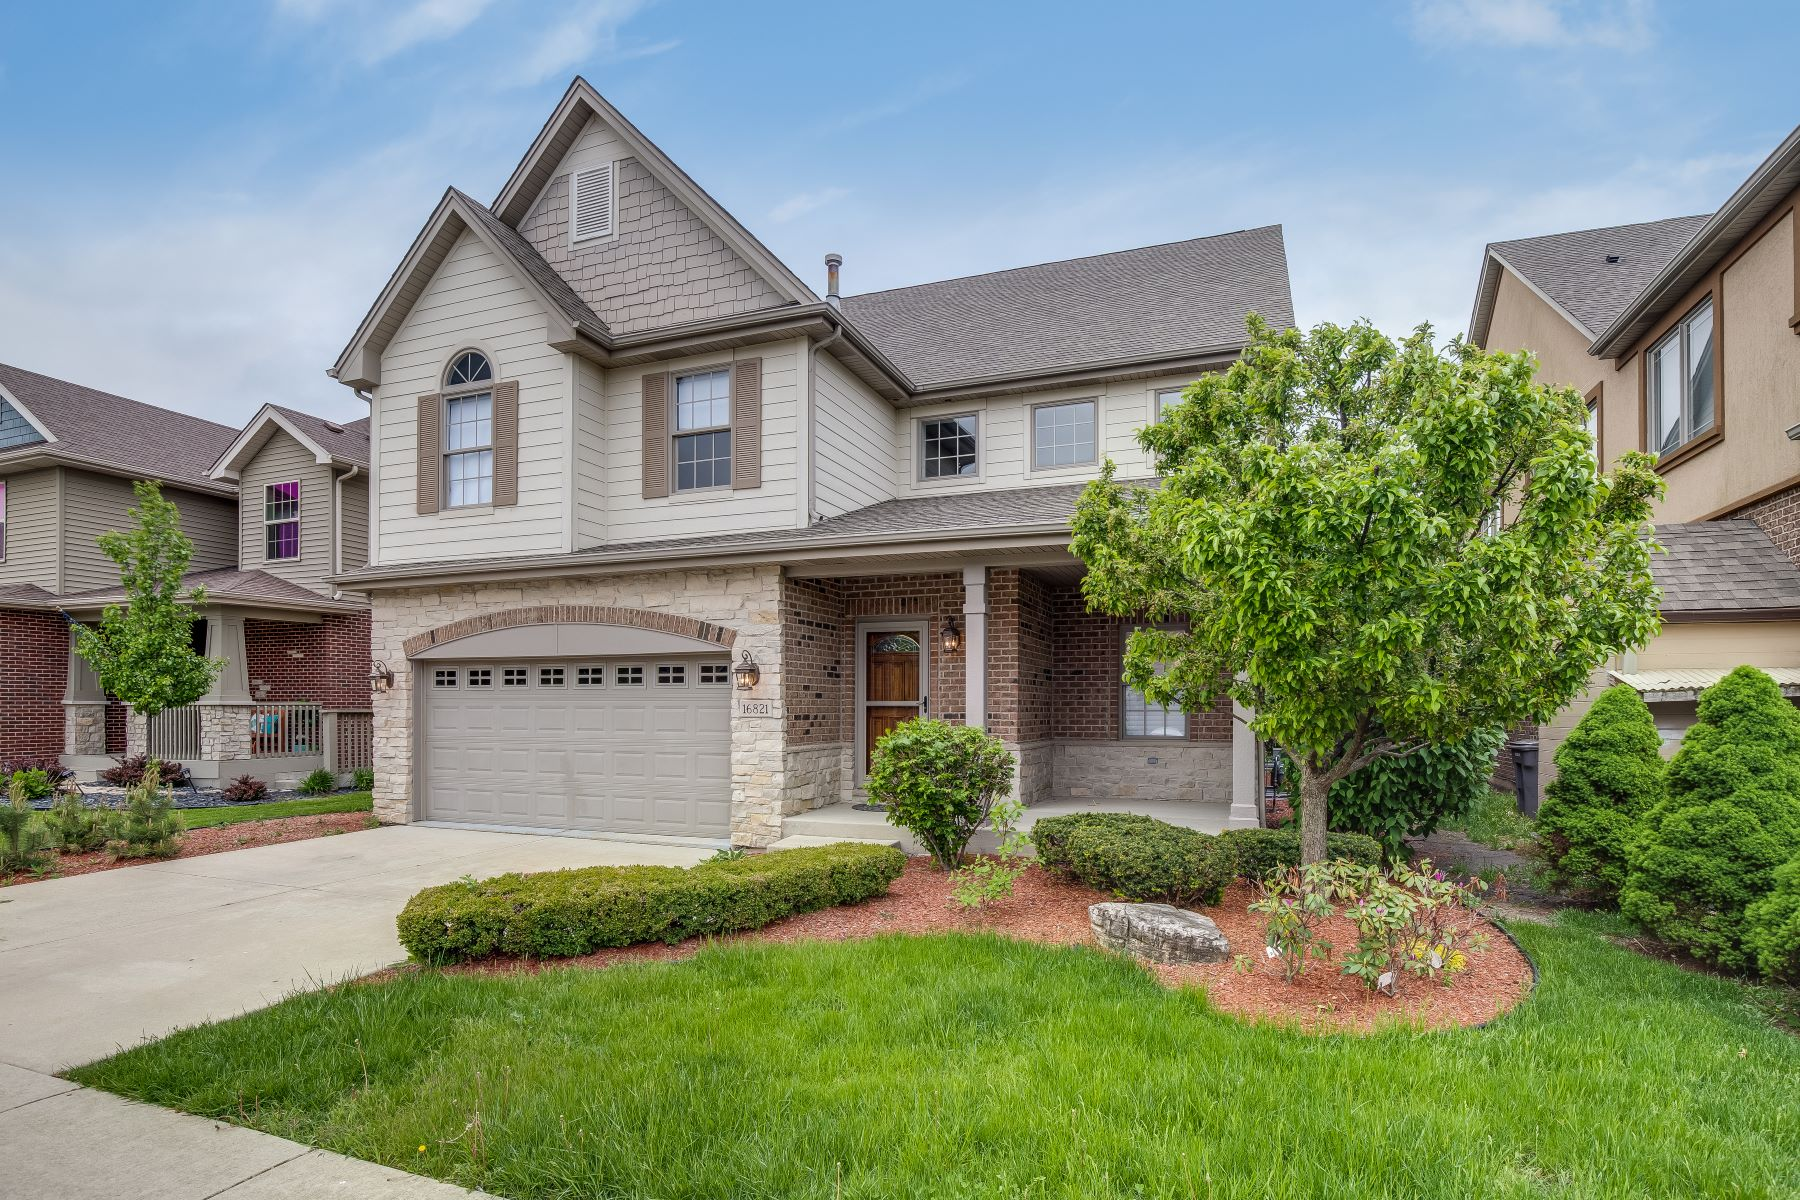 Single Family Home for Active at Stunning Orland Park Home 16821 Sheridans Trail Orland Park, Illinois 60467 United States